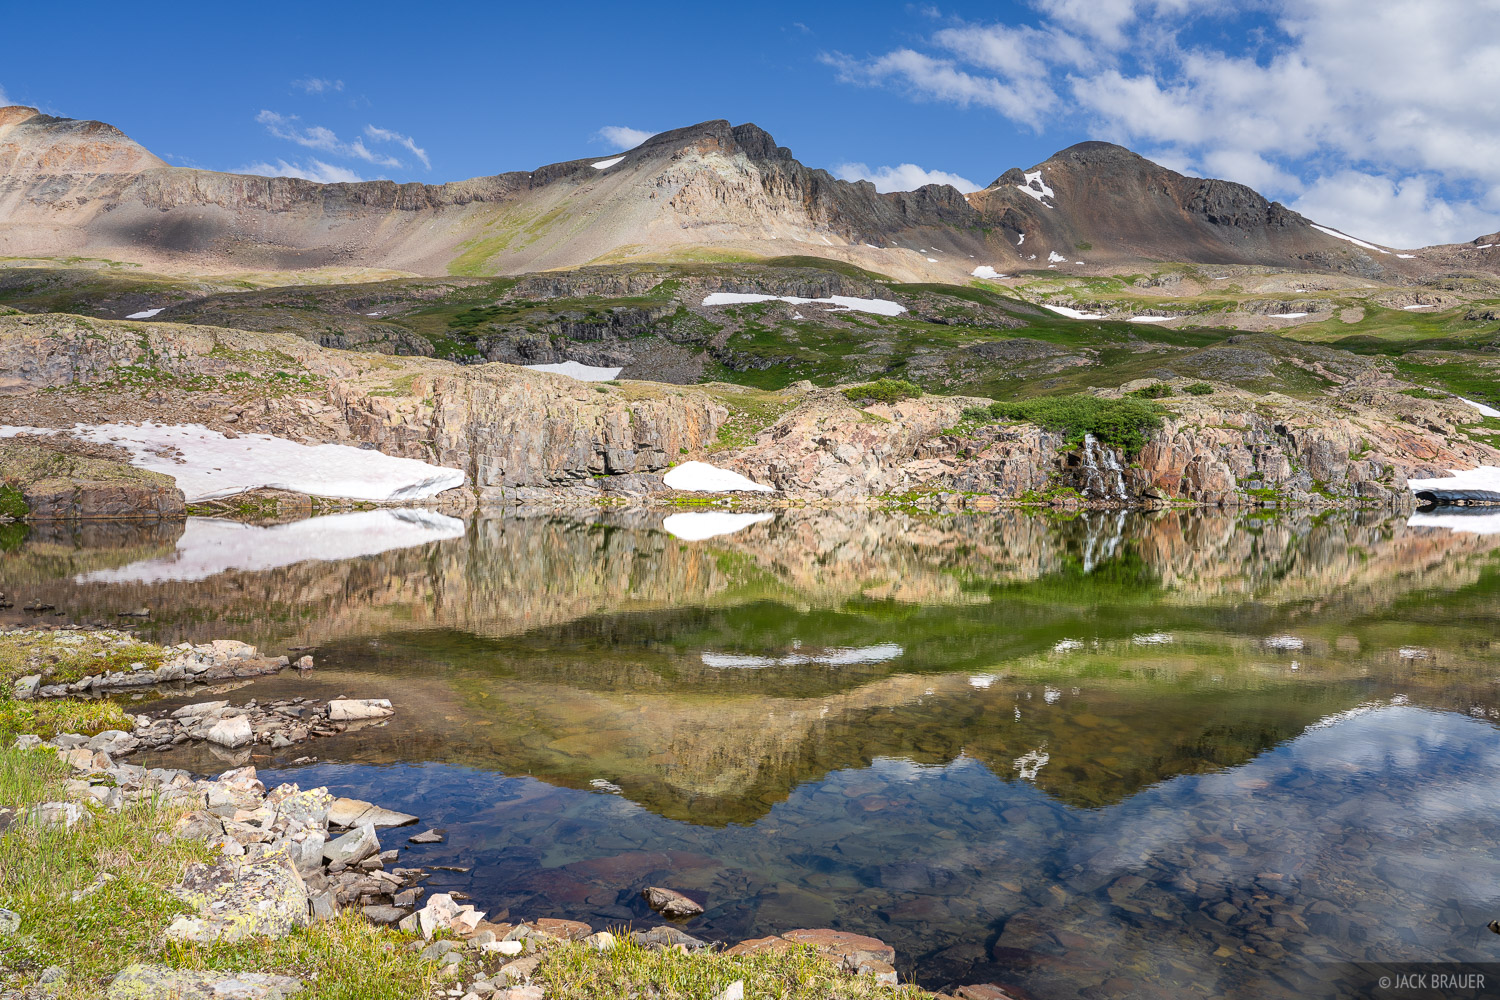 Cloud shadows reflected in a small alpine lake in the San Juan Mountains - July.